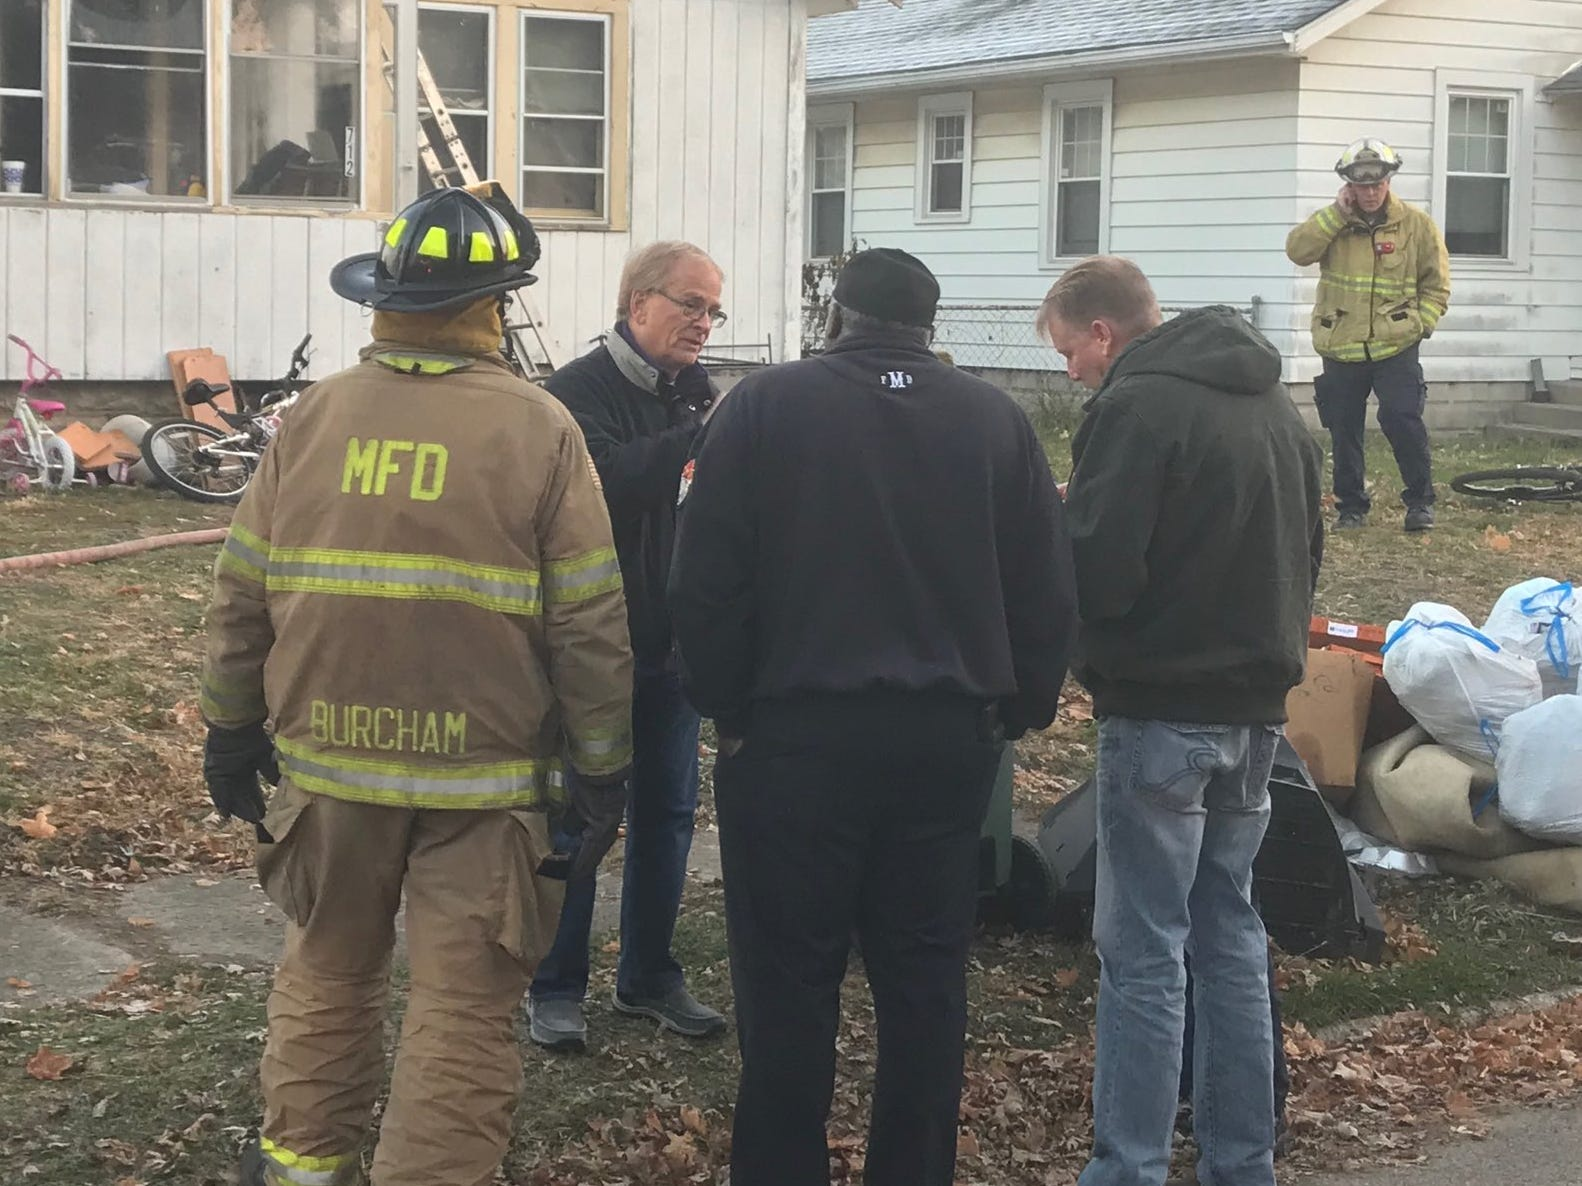 Muncie Mayor Dennis Tyler speaks to fire department officials at the scene of Wednesday's fatal fire.